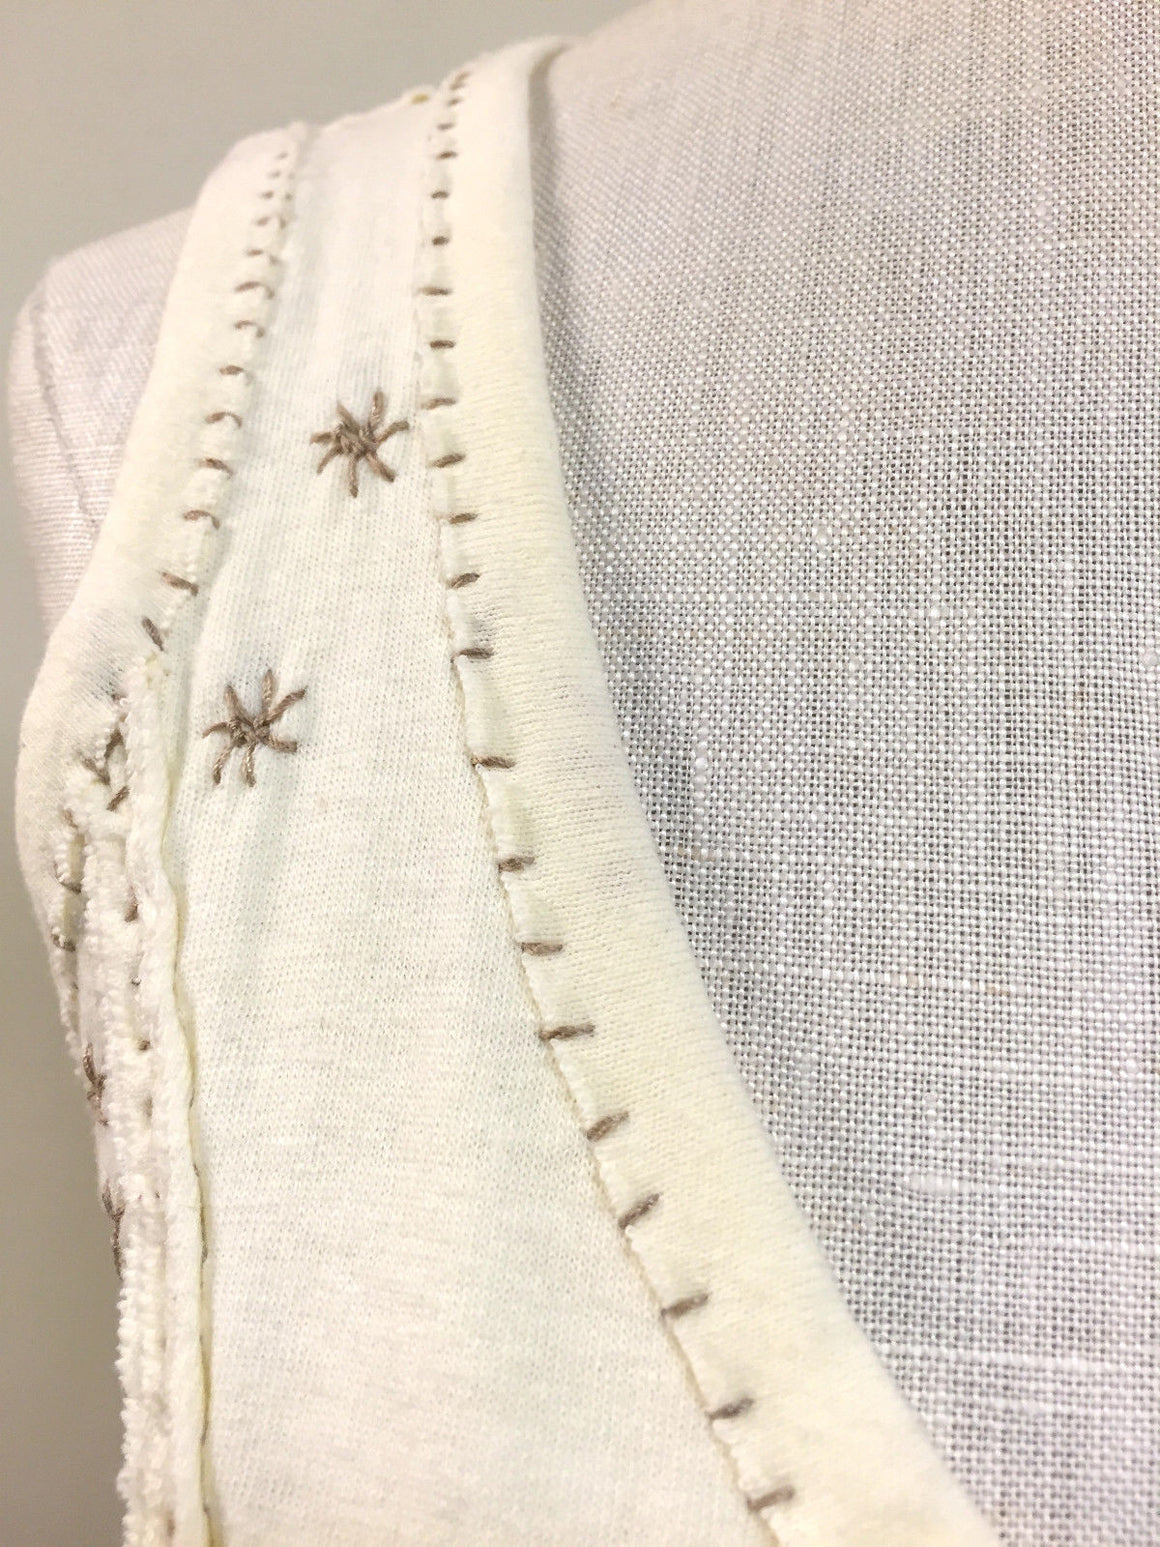 bisbiz.com PROJECT ALABAMA Cream-White Cotton Taupe Hand Embroidery Sleeveless Blouse Top Size: XS - Bis Luxury Resale